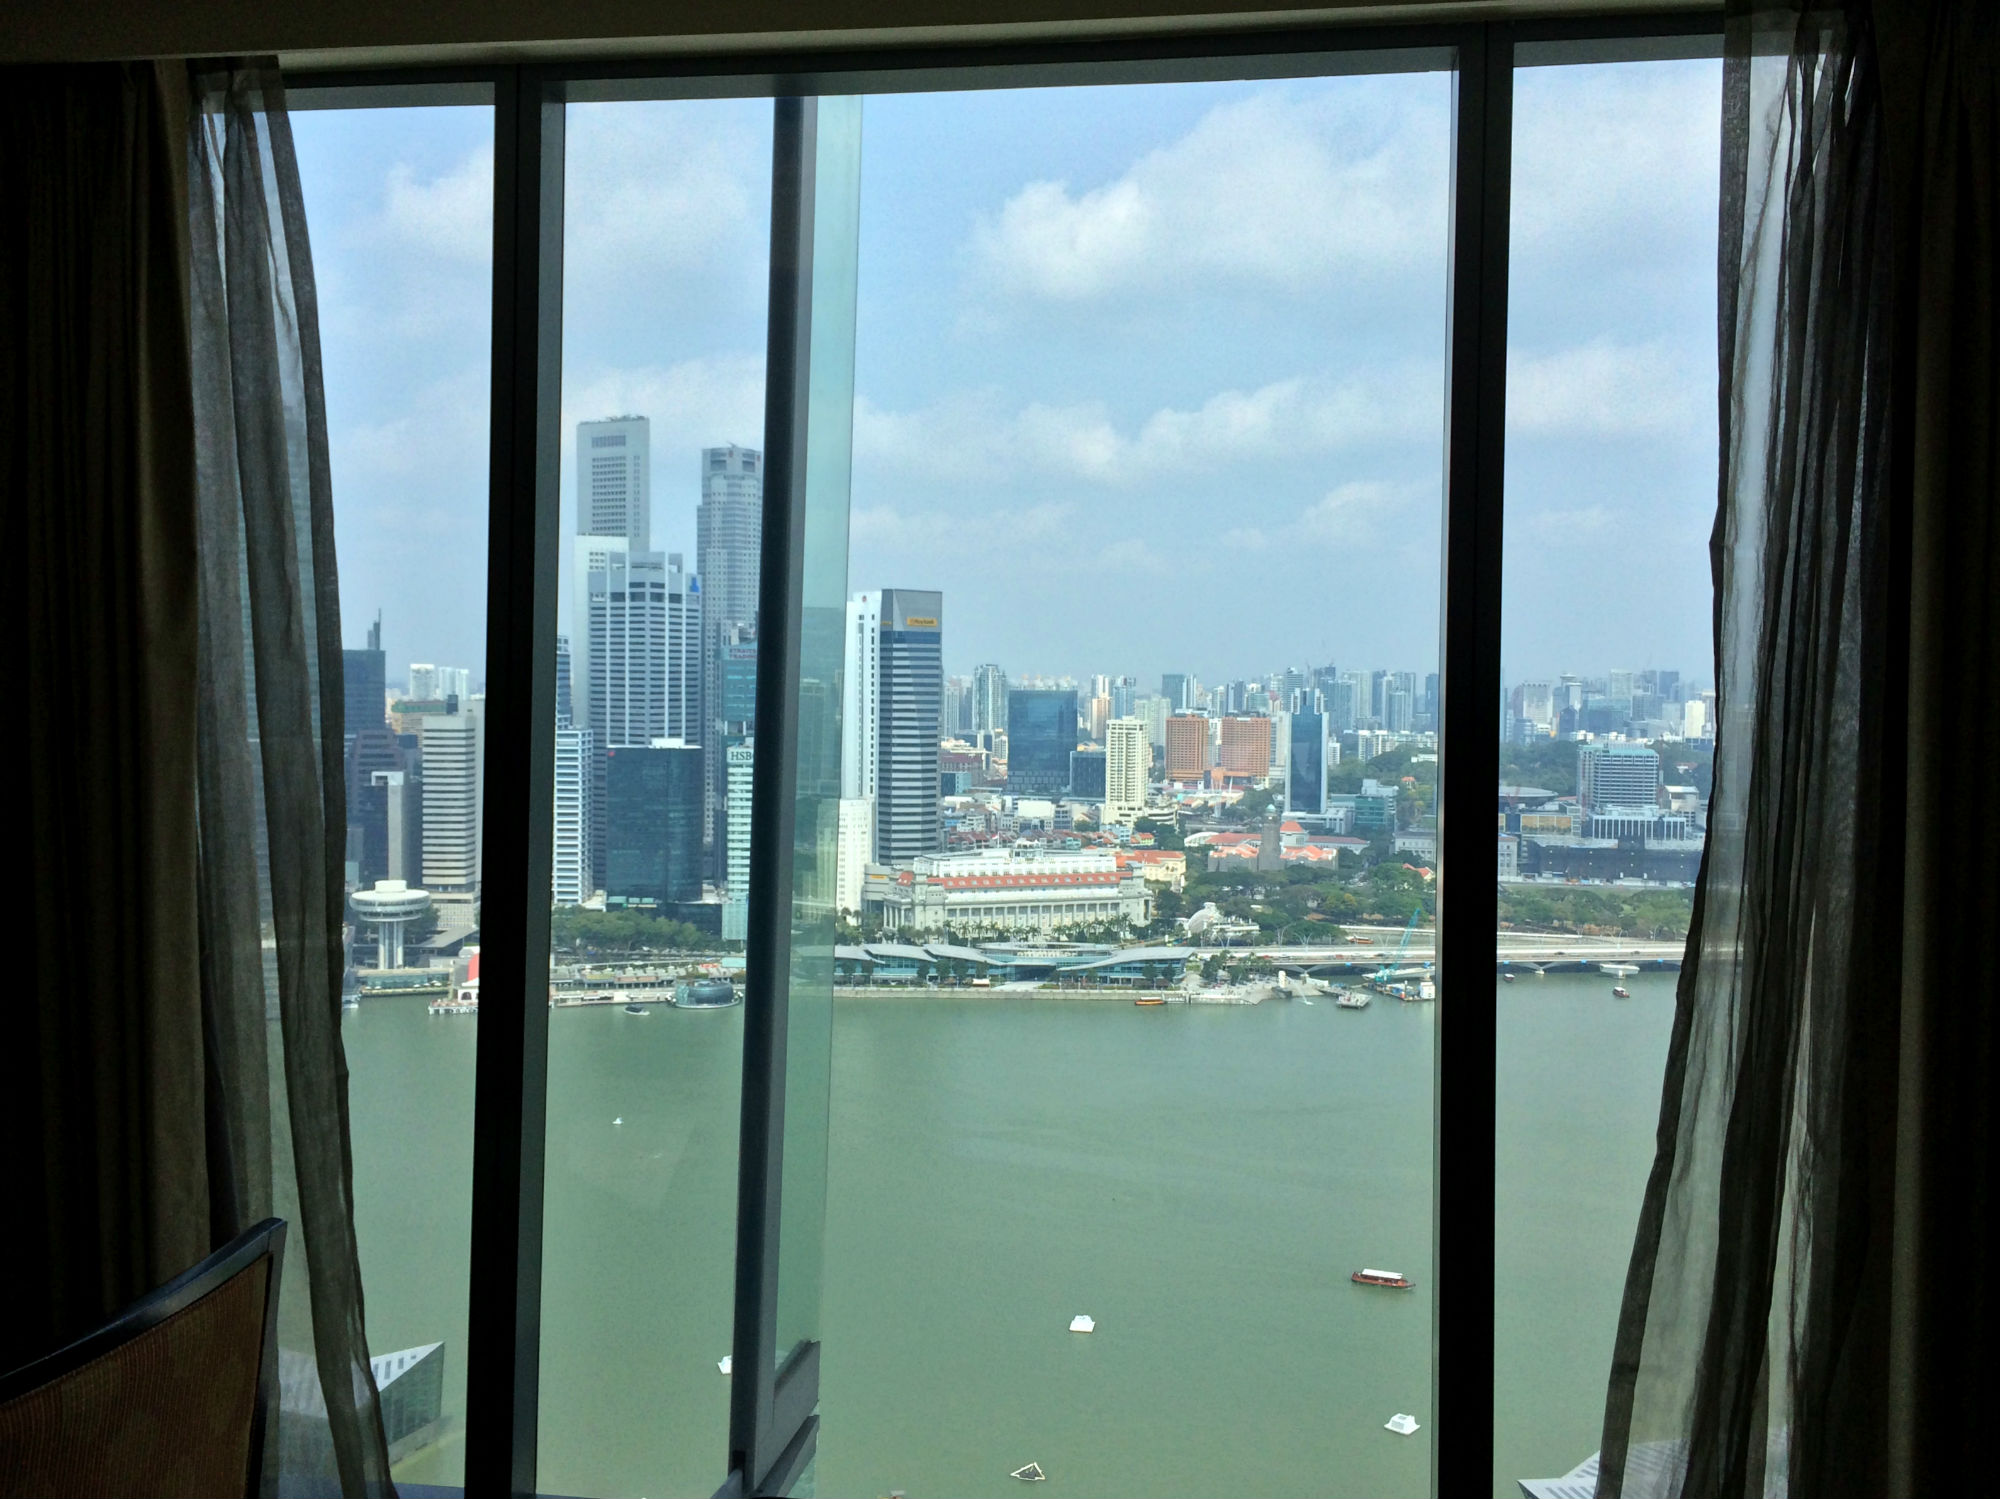 View of Singapore from our hotel room